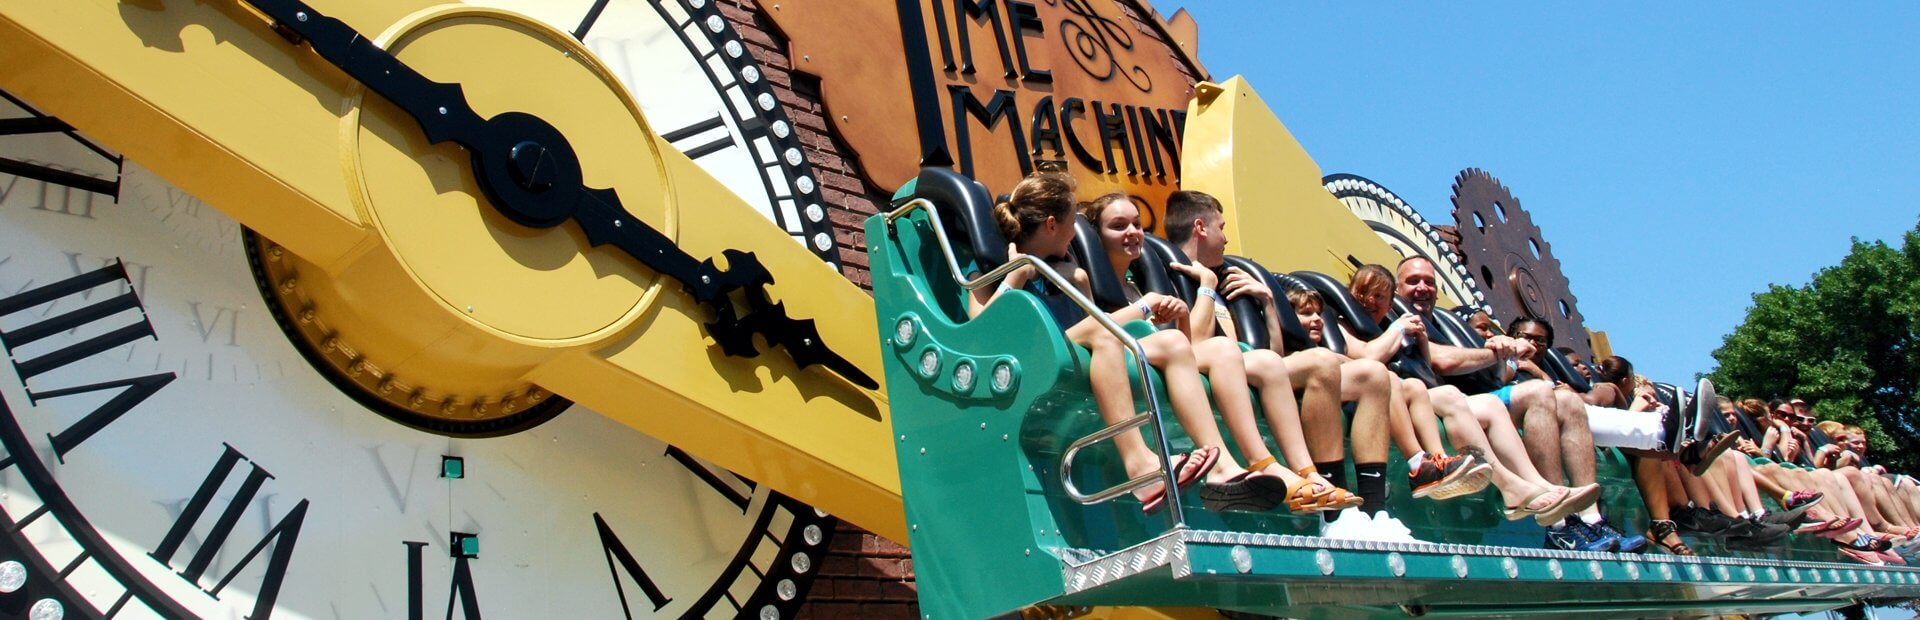 People ride on the giant clock hand of the Time Machine ride.